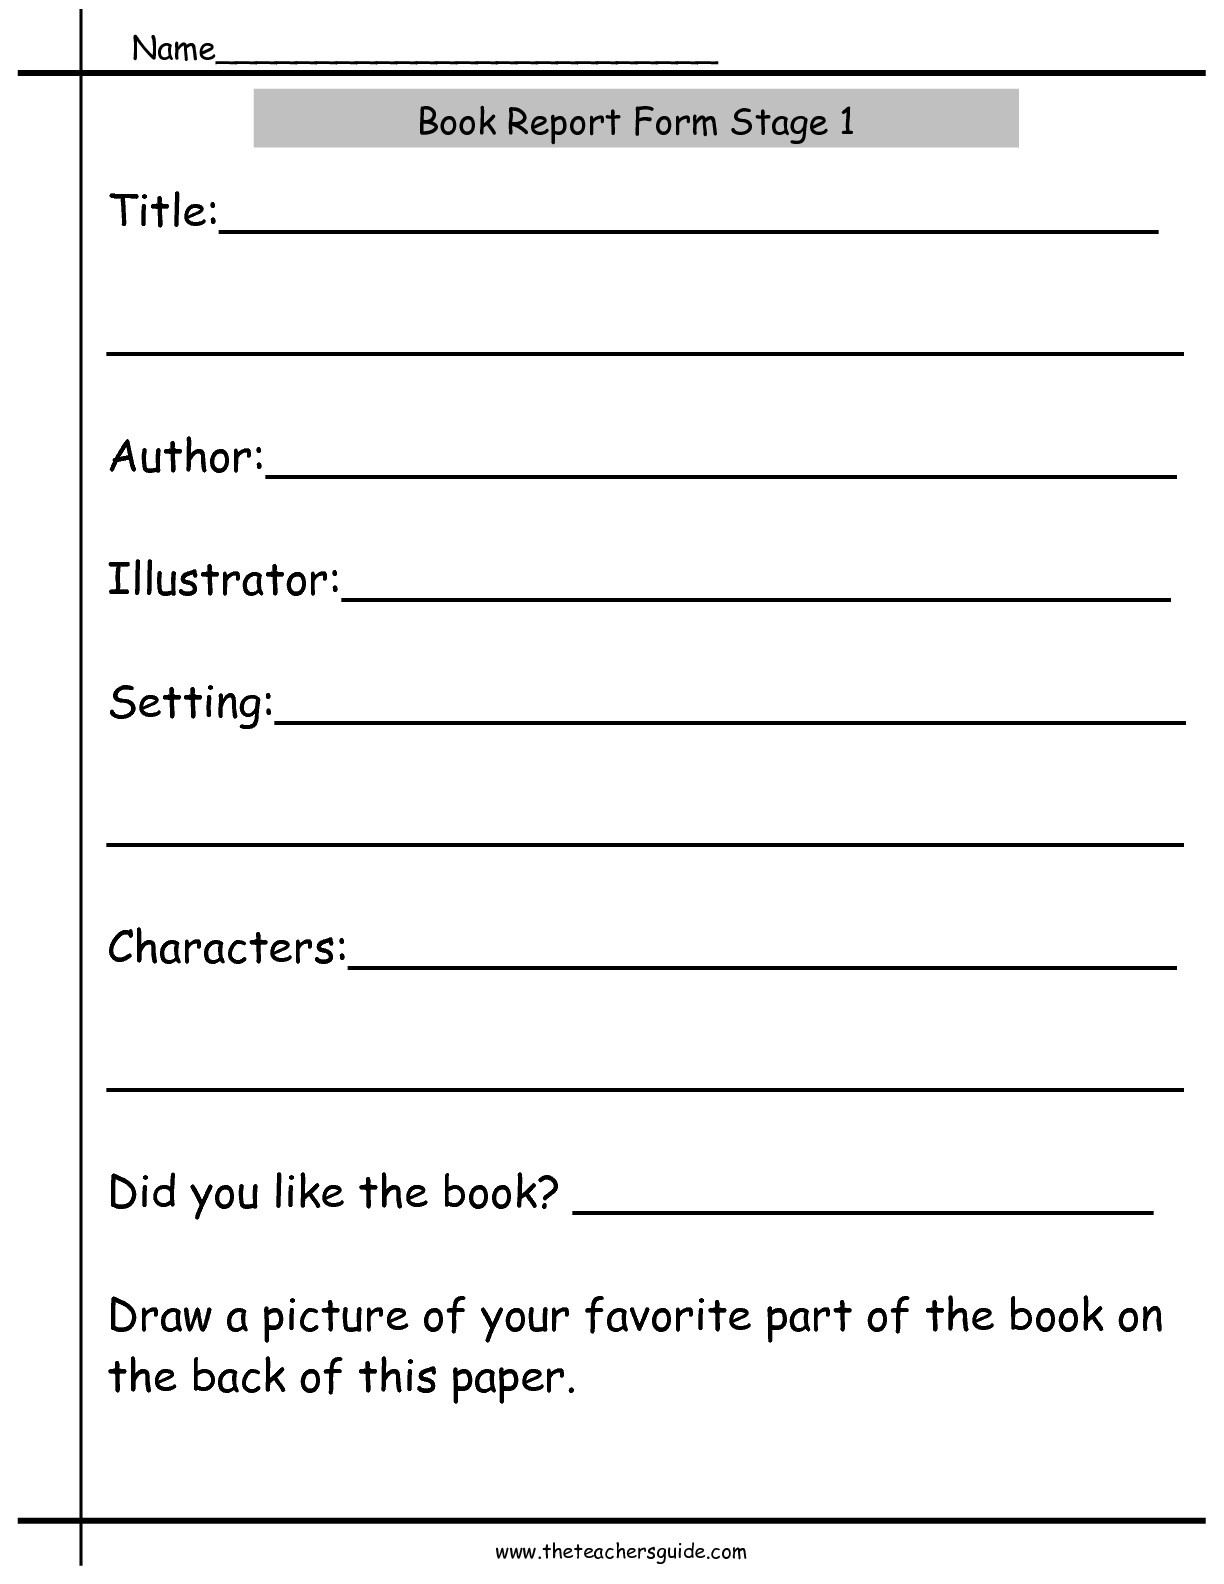 Book Report Worksheets From The Teacher's Guide - Free Printable Book Report Forms